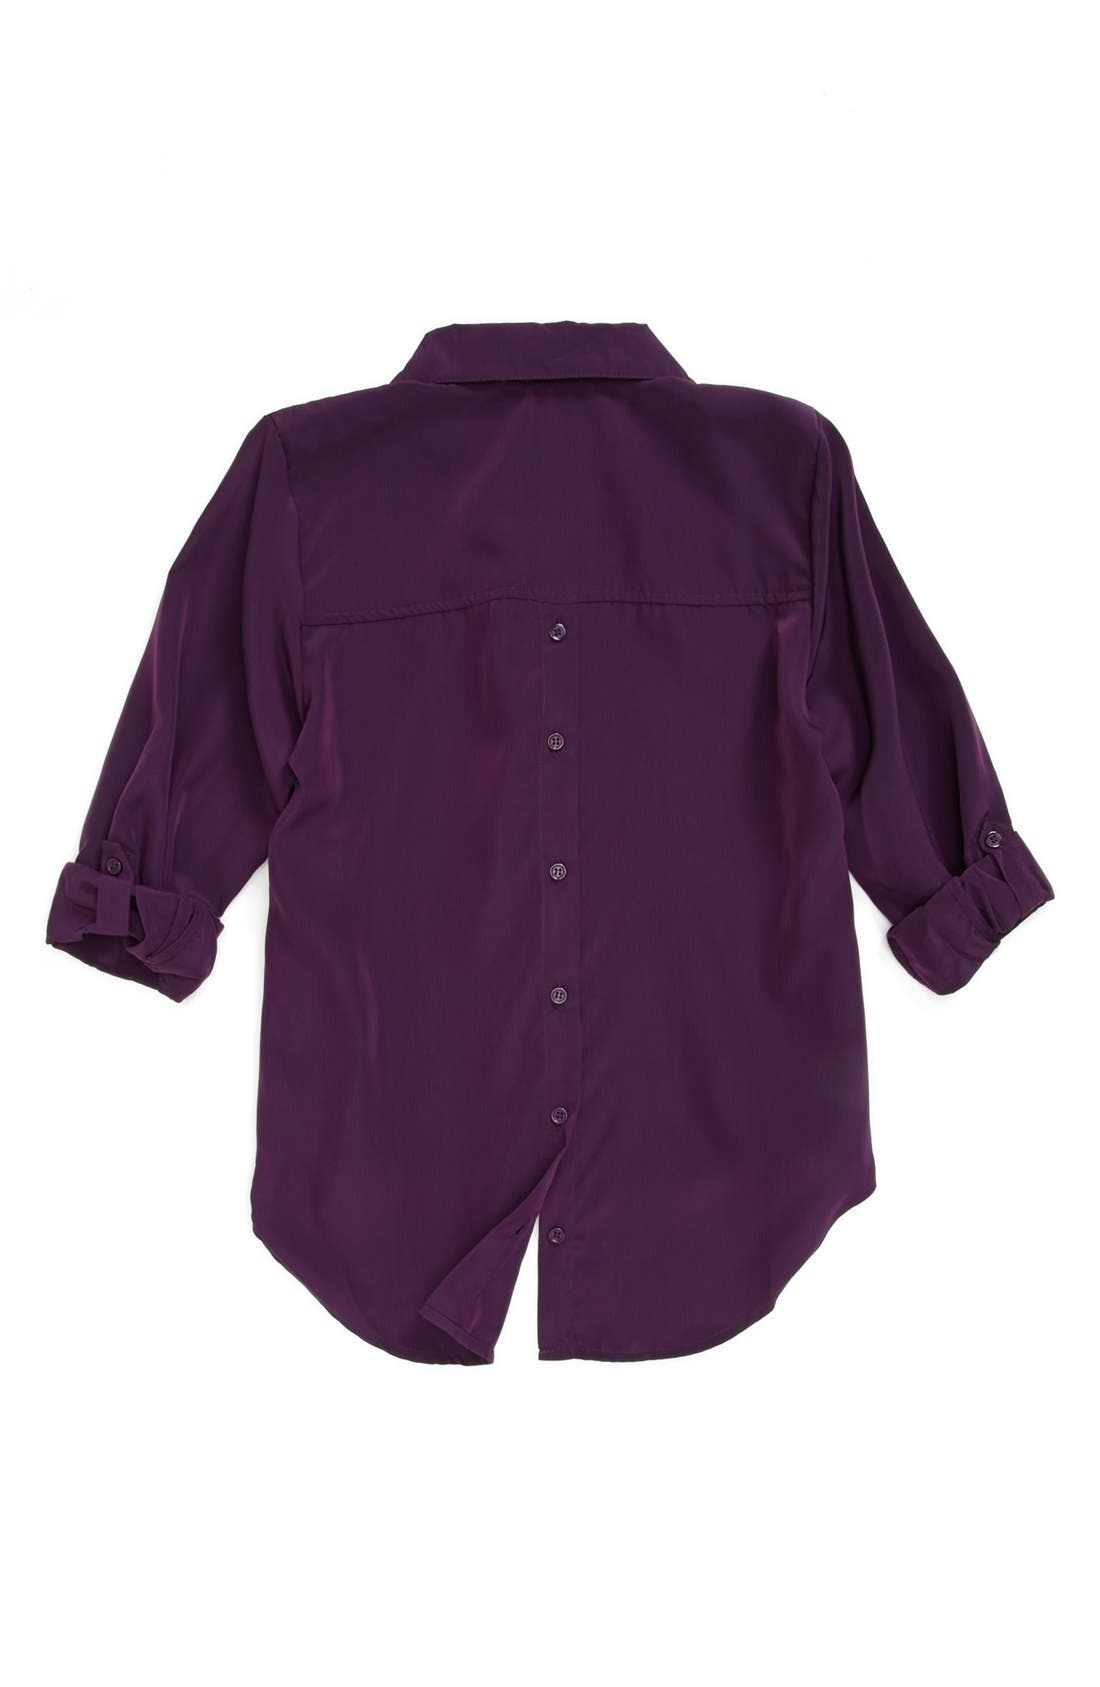 Alternate Image 2  - Mia Chica 'Back Button' Woven Top (Big Girls)